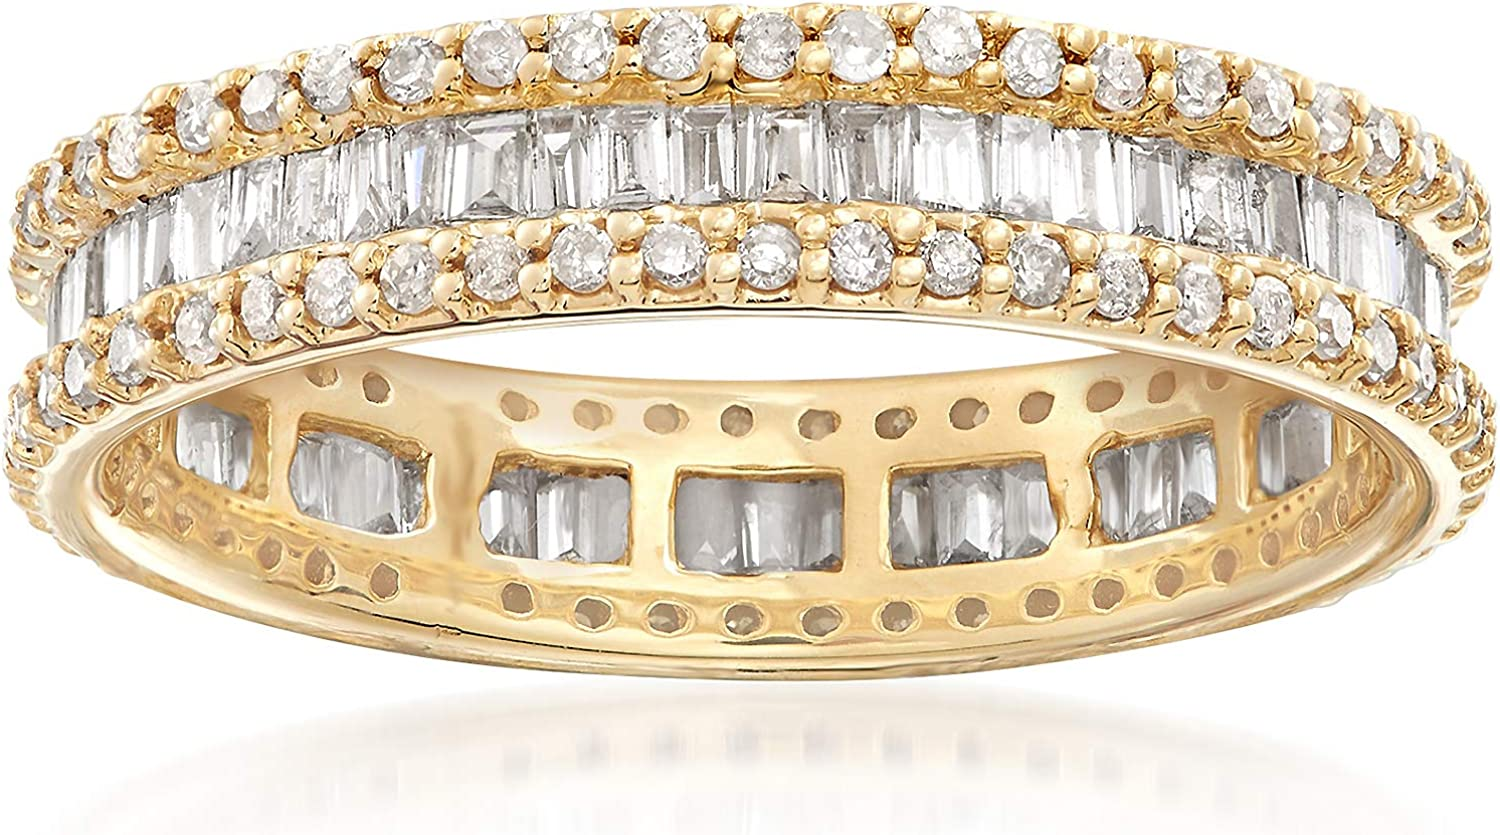 Ross-Simons 1.00 ct. t.w. Baguette and Round Diamond Eternity Ring in 14kt Yellow Gold